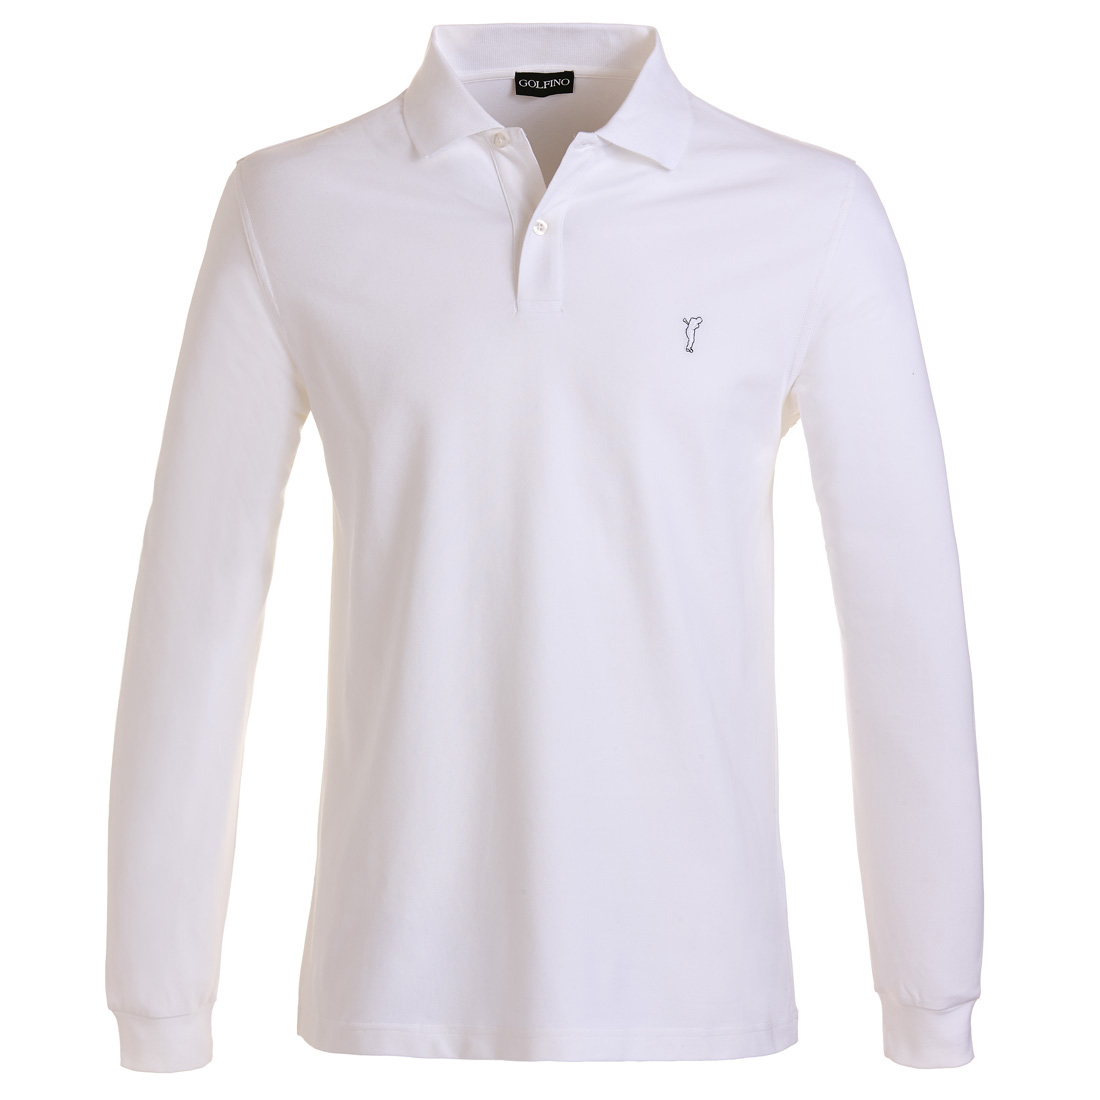 Herren Langarm Golf-Funktionspolo mit Sun Protection und Moisture Management